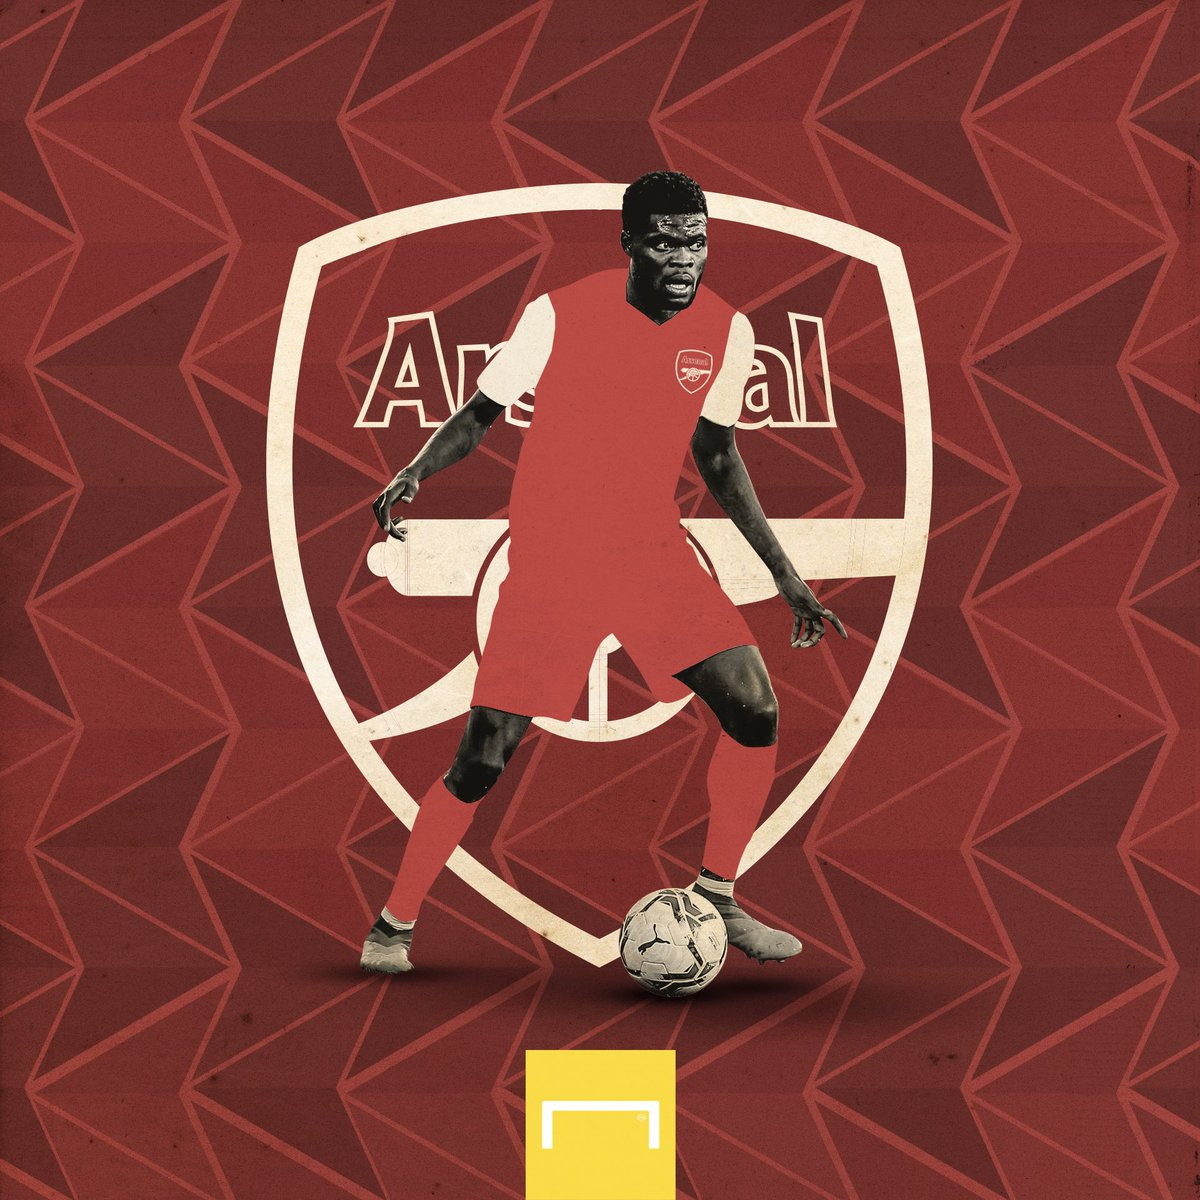 Partey time for Arsenal 😎  #UEL https://t.co/r9PBKW9geD https://t.co/aI2GKWFMmk